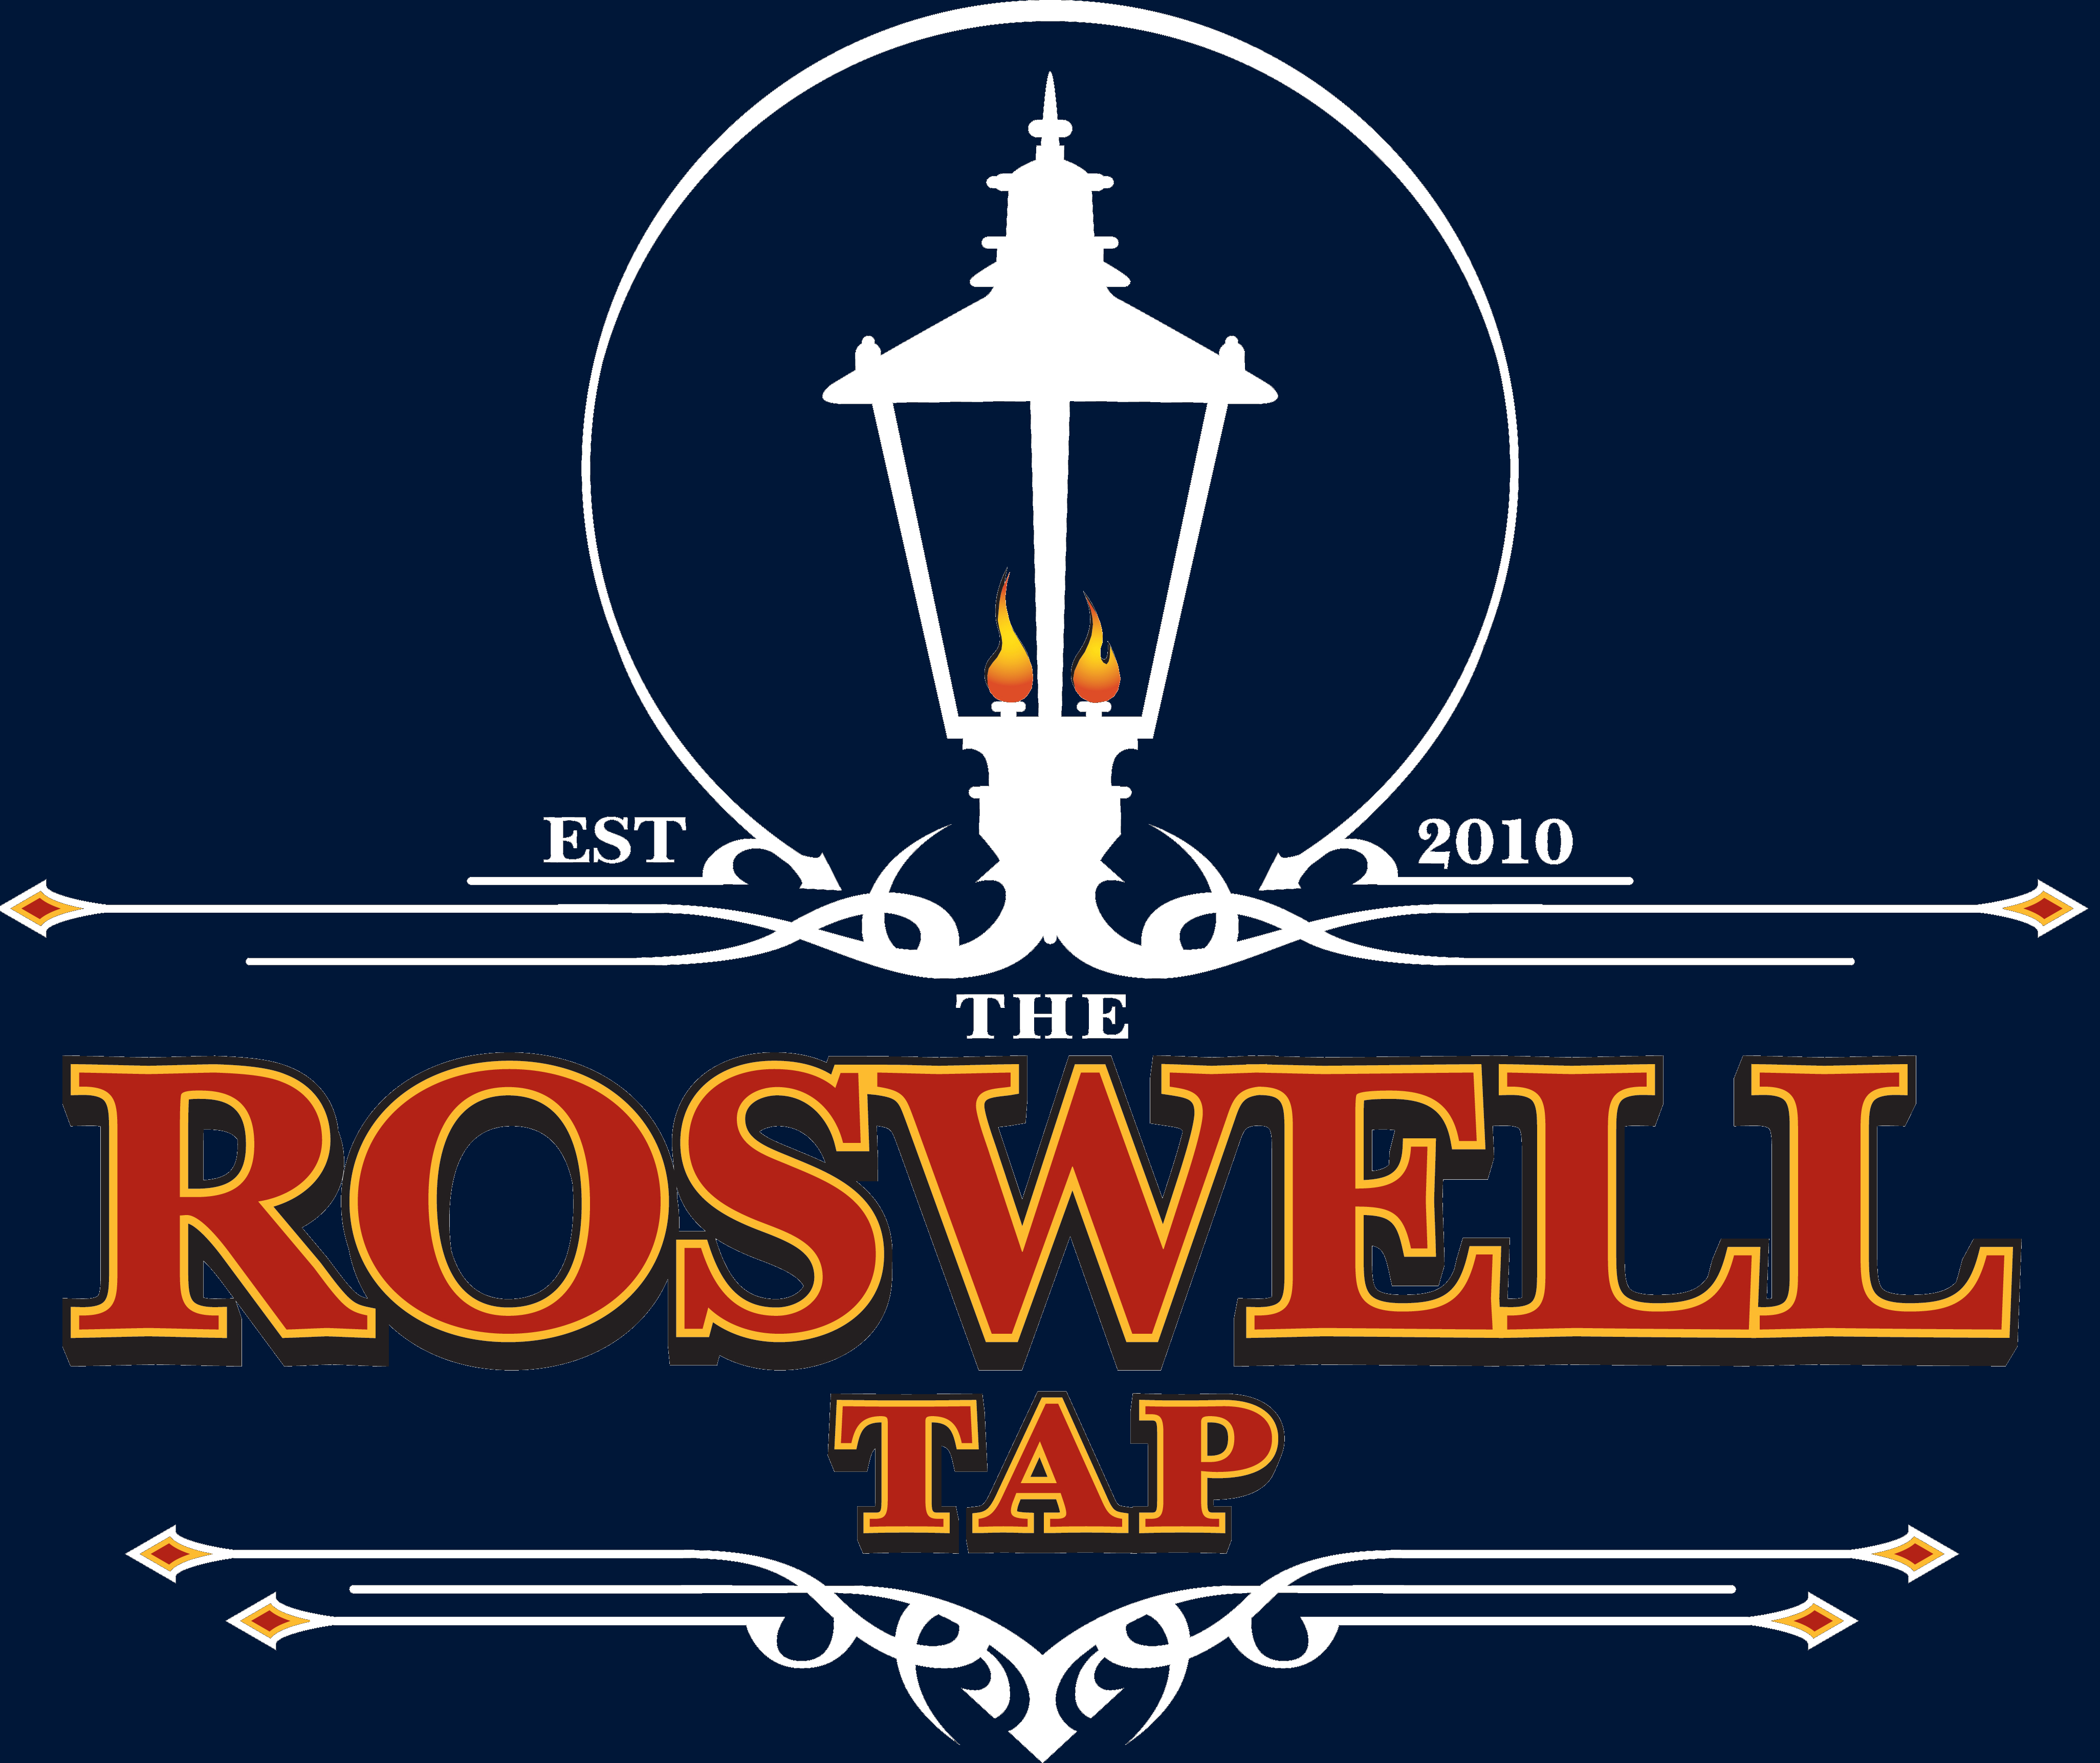 Roswell Tap